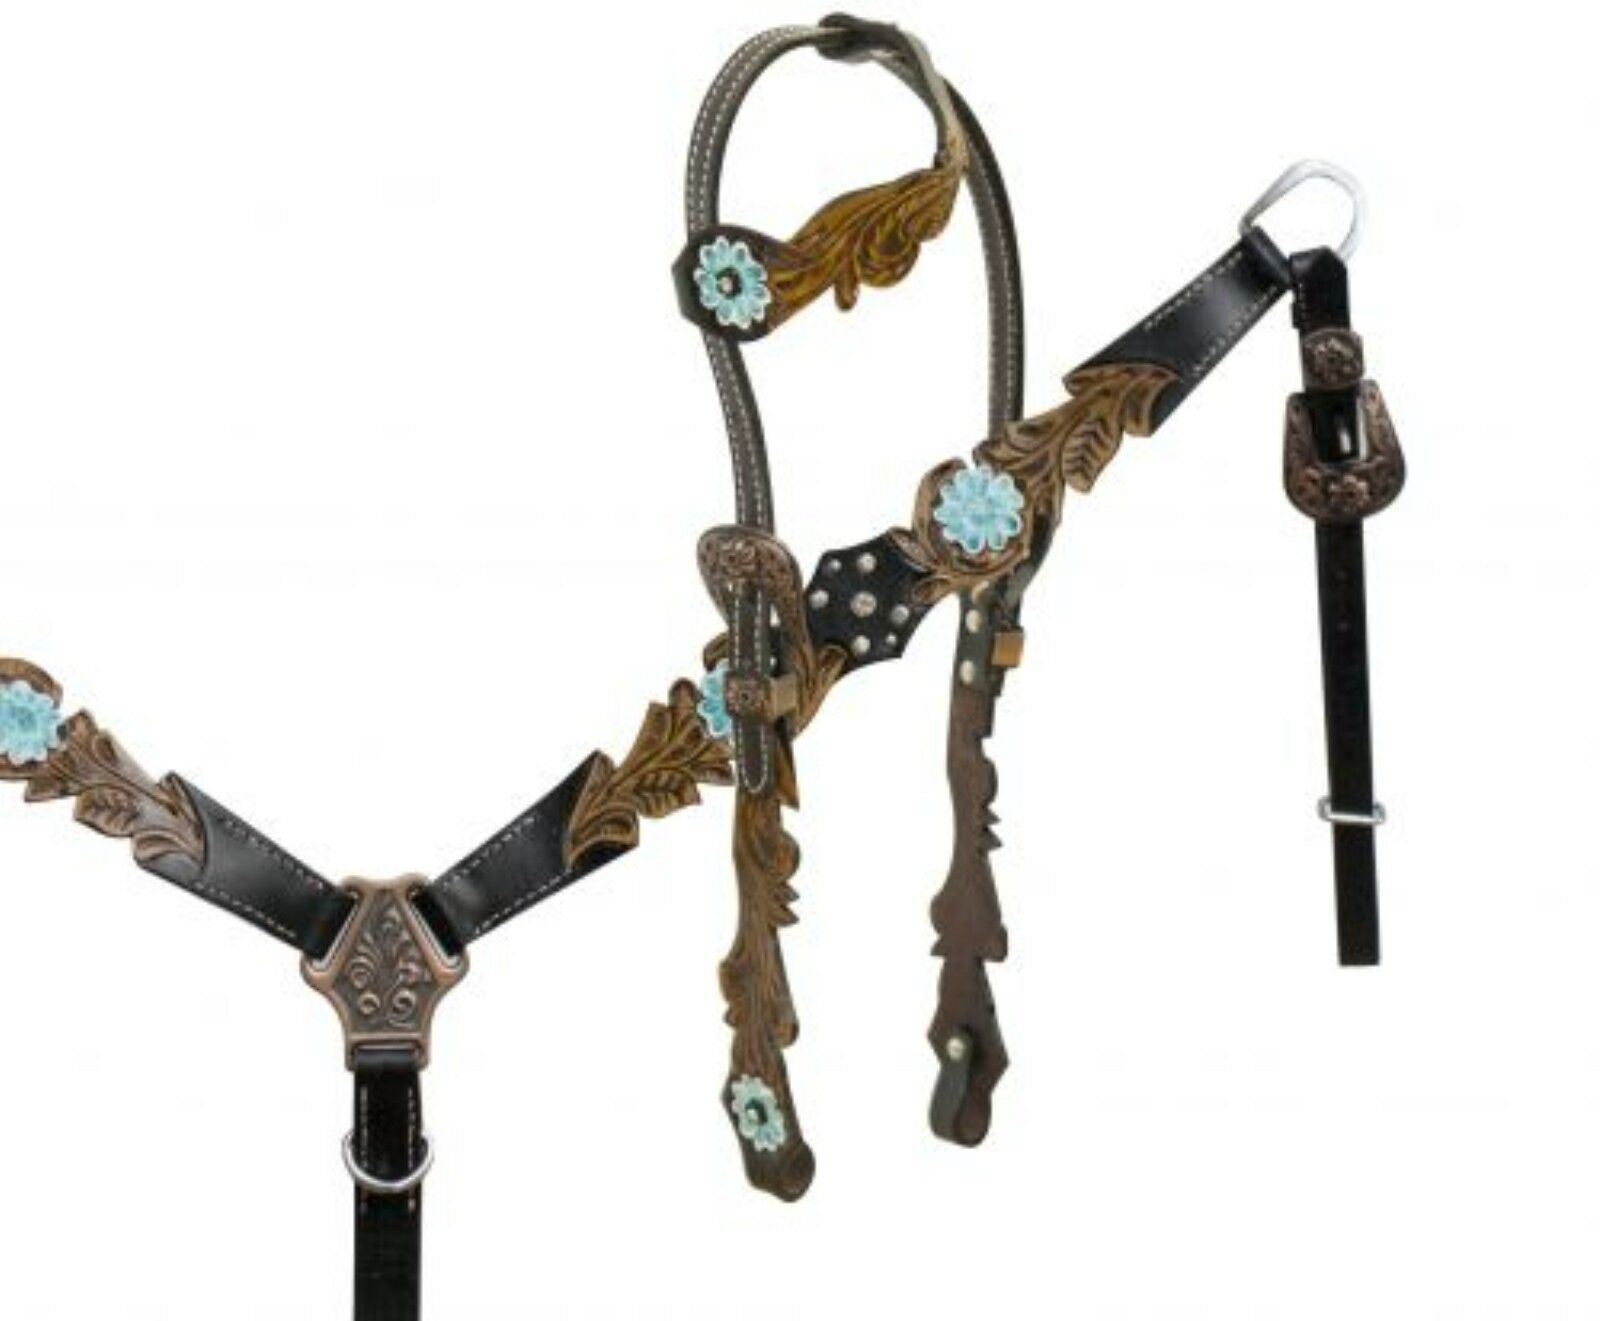 Showman One Ear Headstall Breastcollar with Teal and Copper Accents & Hardware